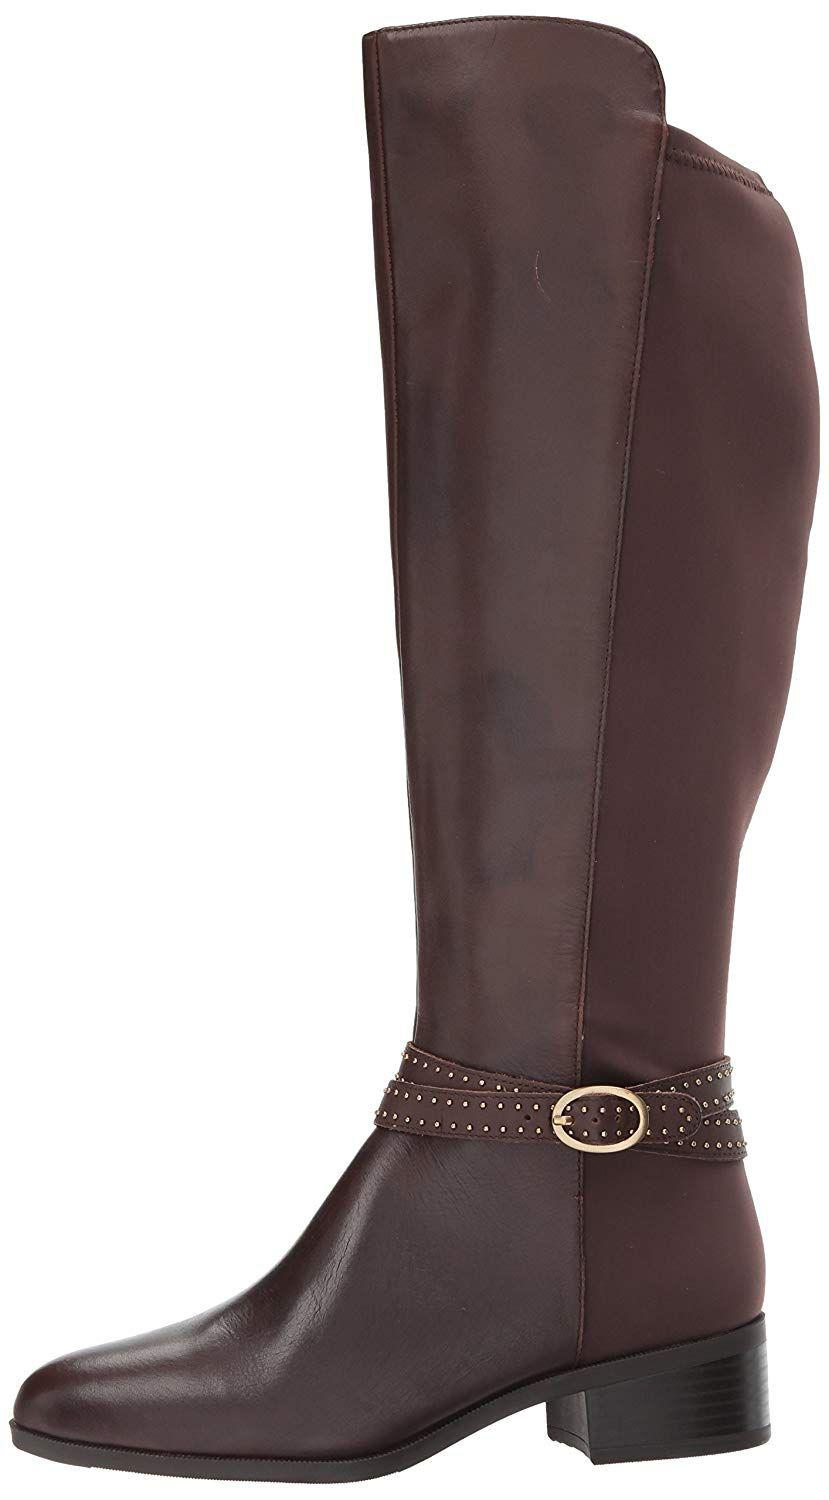 7b68b3131d3 Lyst - Bandolino Womens Bryices Wide Calf Leather Almond Toe Knee ...